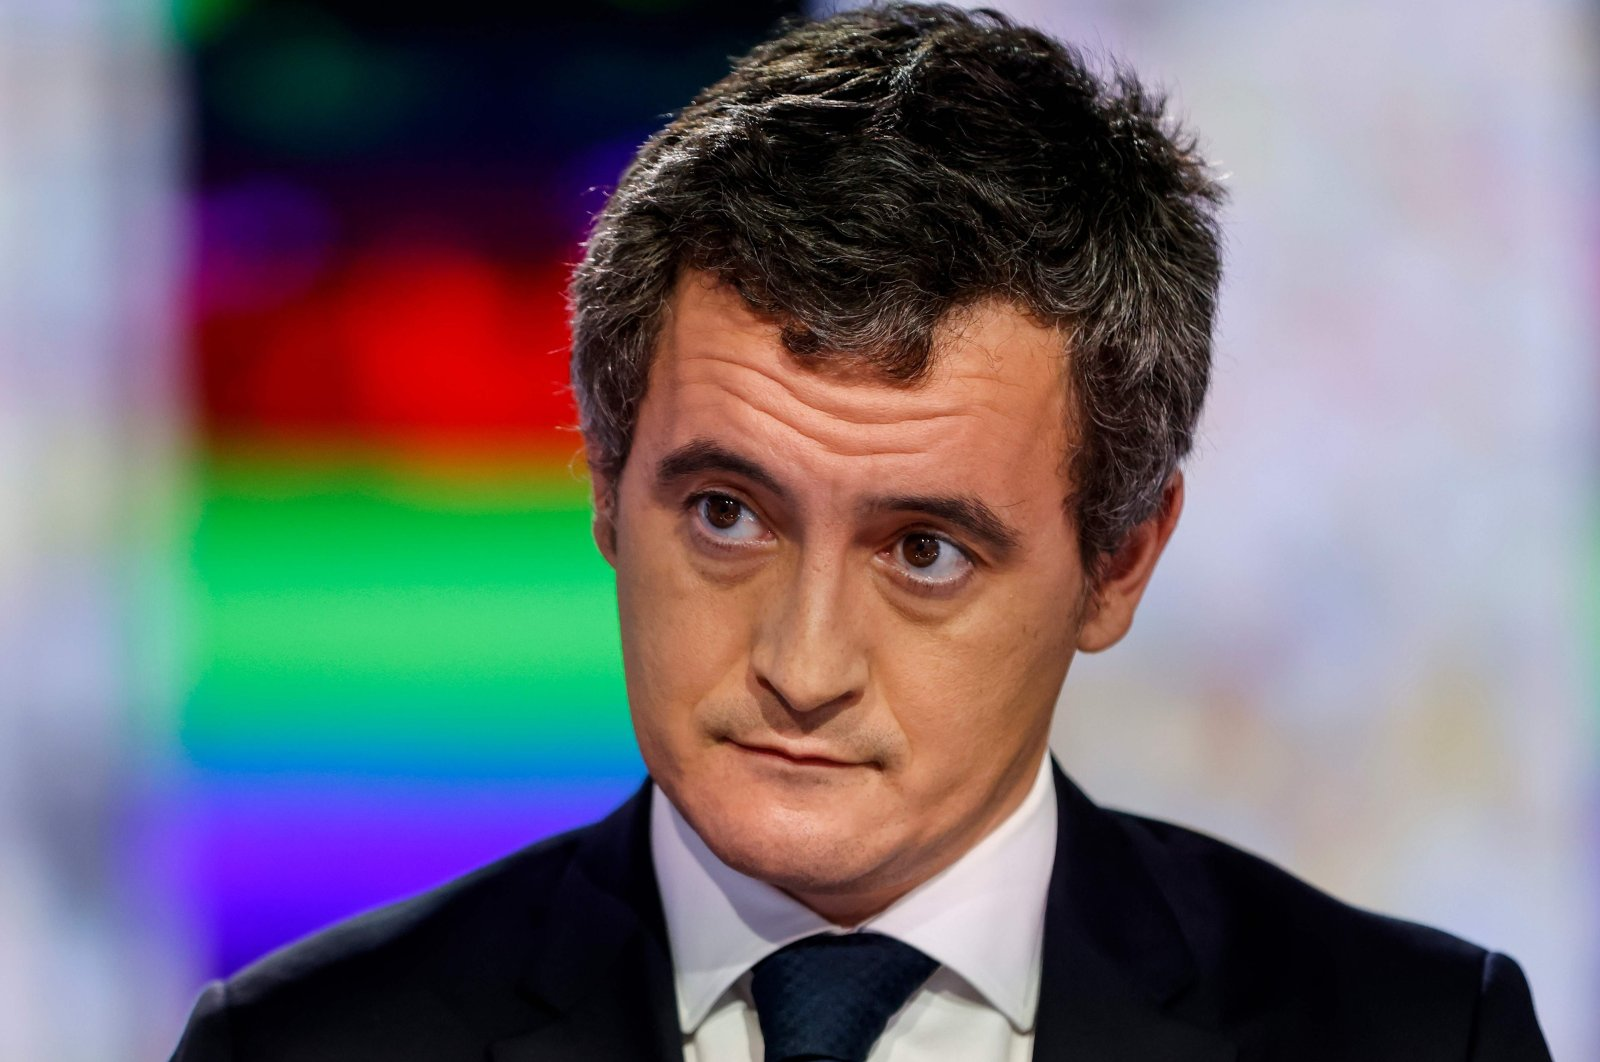 French Interior Minister Gerald Darmanin waits prior to taking part in the evening news broadcast of French TV channel France 2 in Paris, France, on Nov. 26, 2020. (AFP Photo)